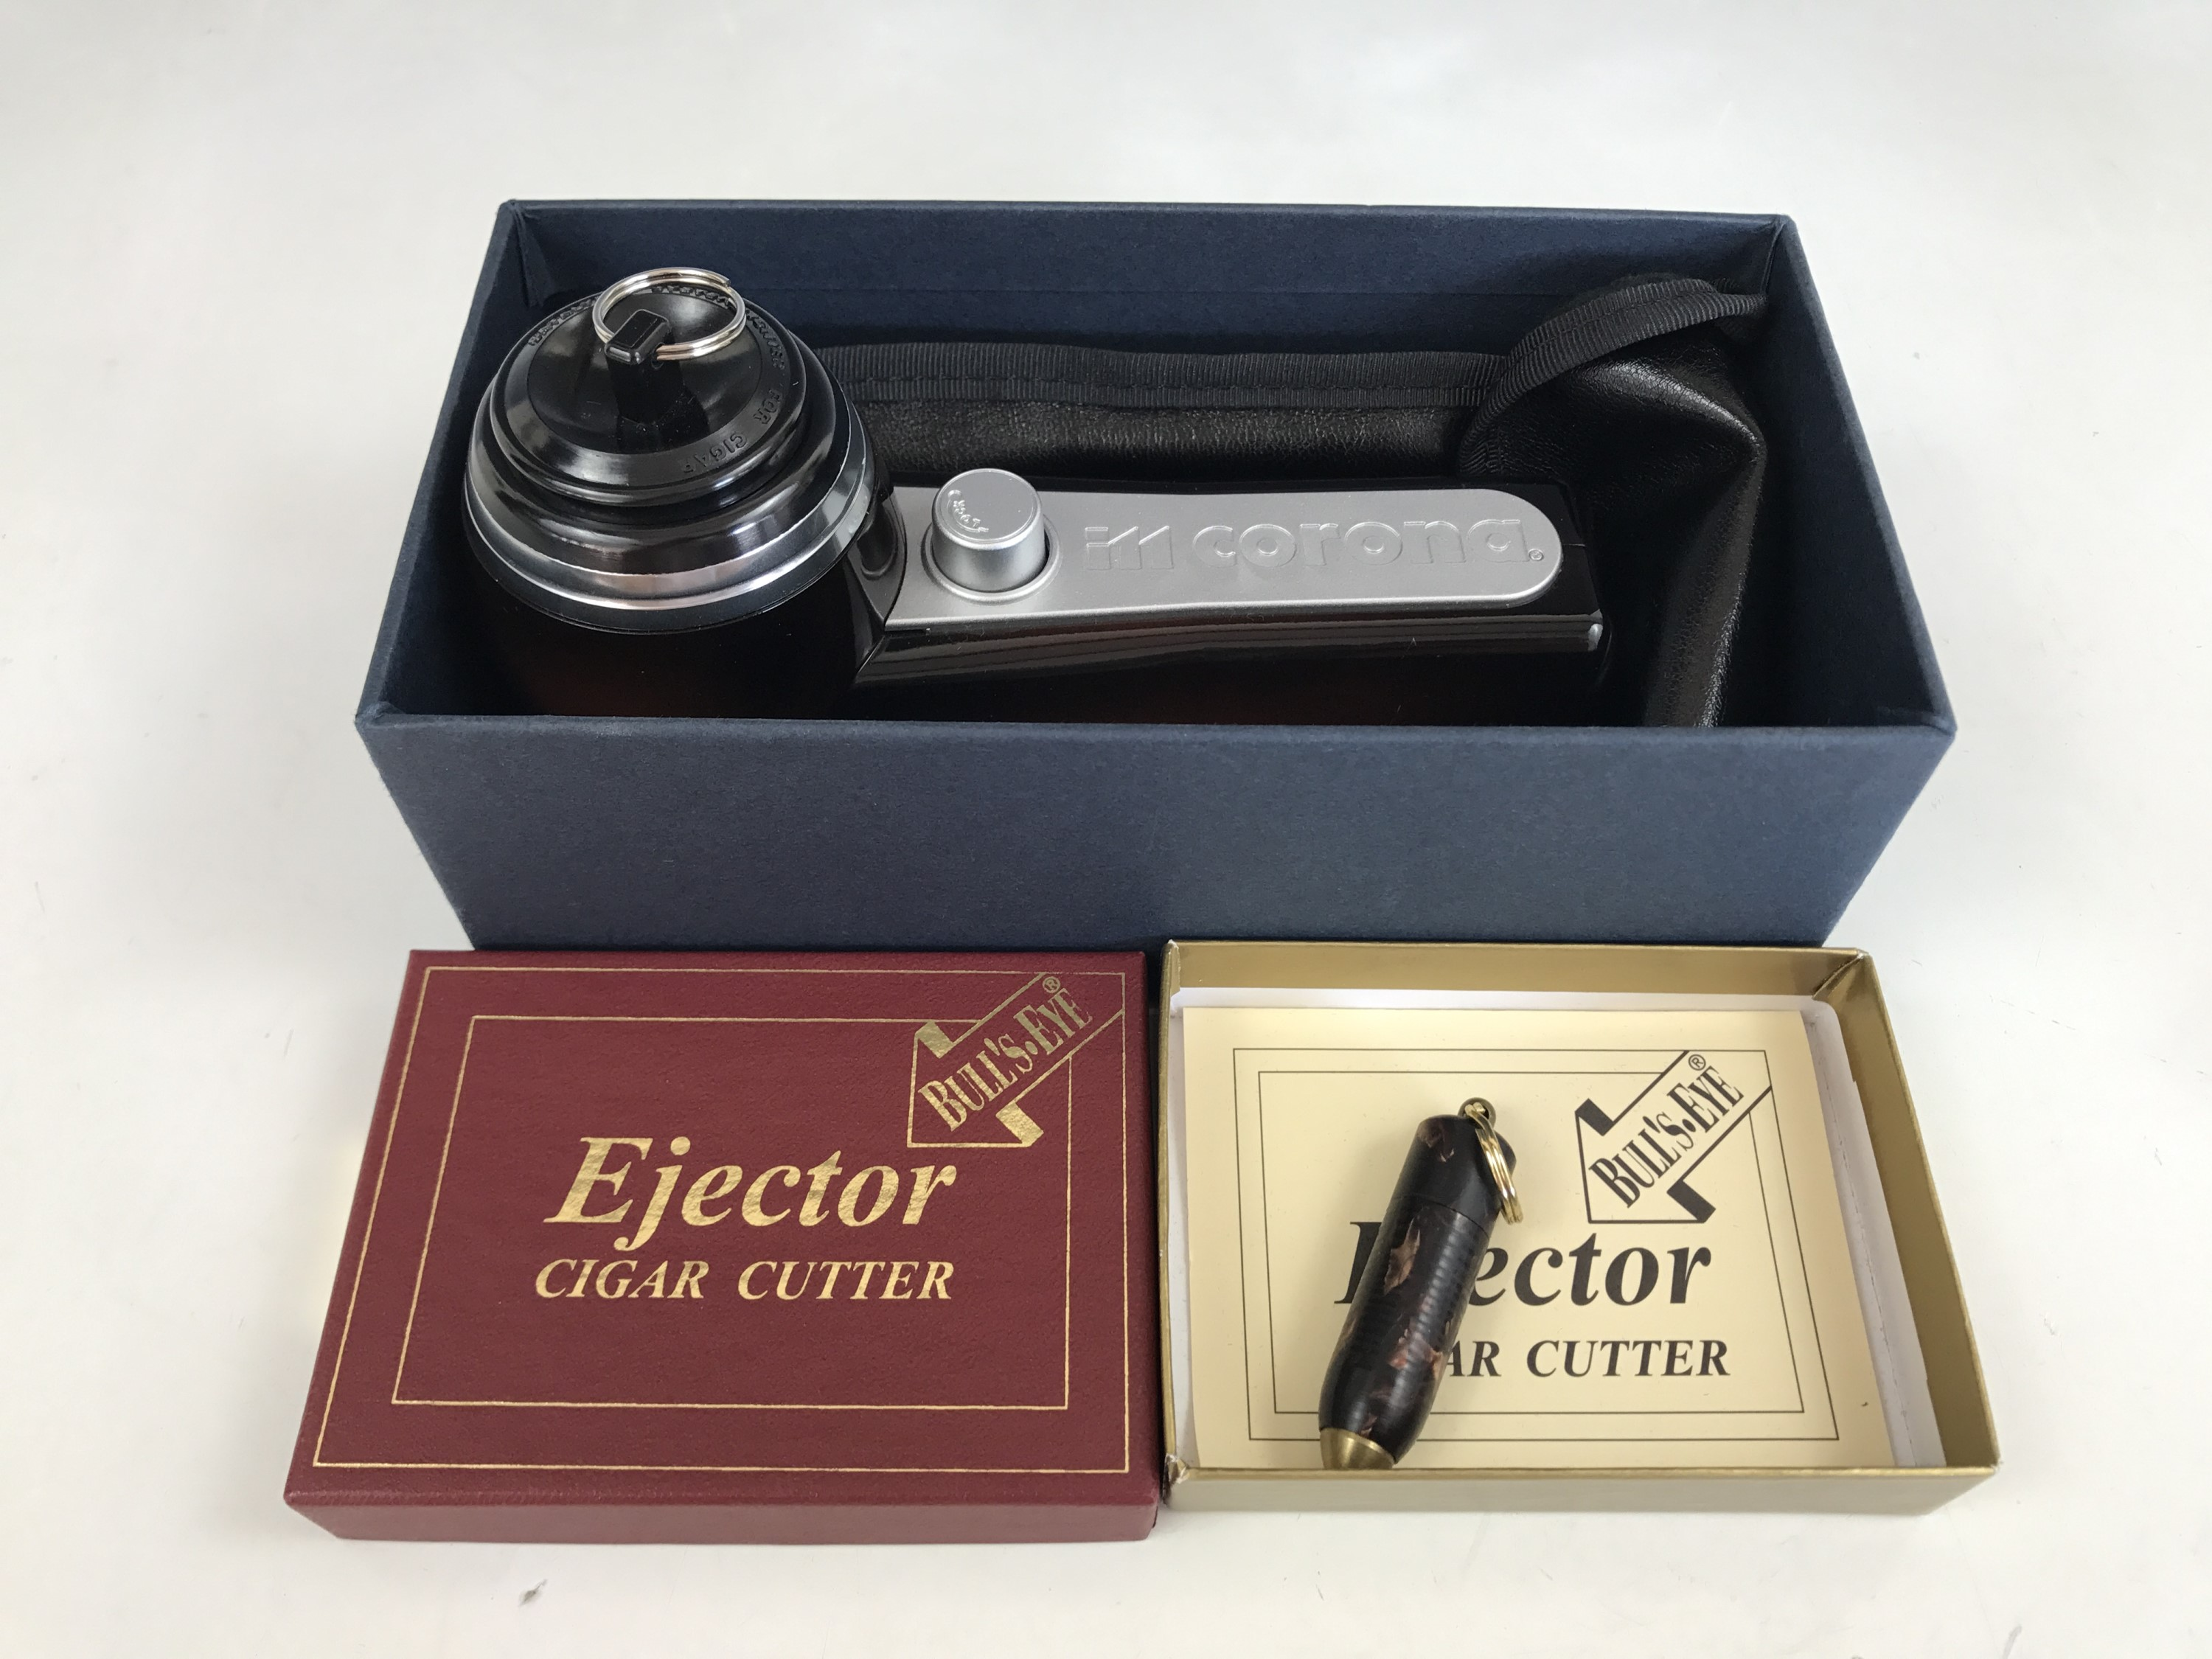 Lot 28 - A novelty Bull's Eye ejector cigar cutter, modelled in the form of a bullet, boxed, together with